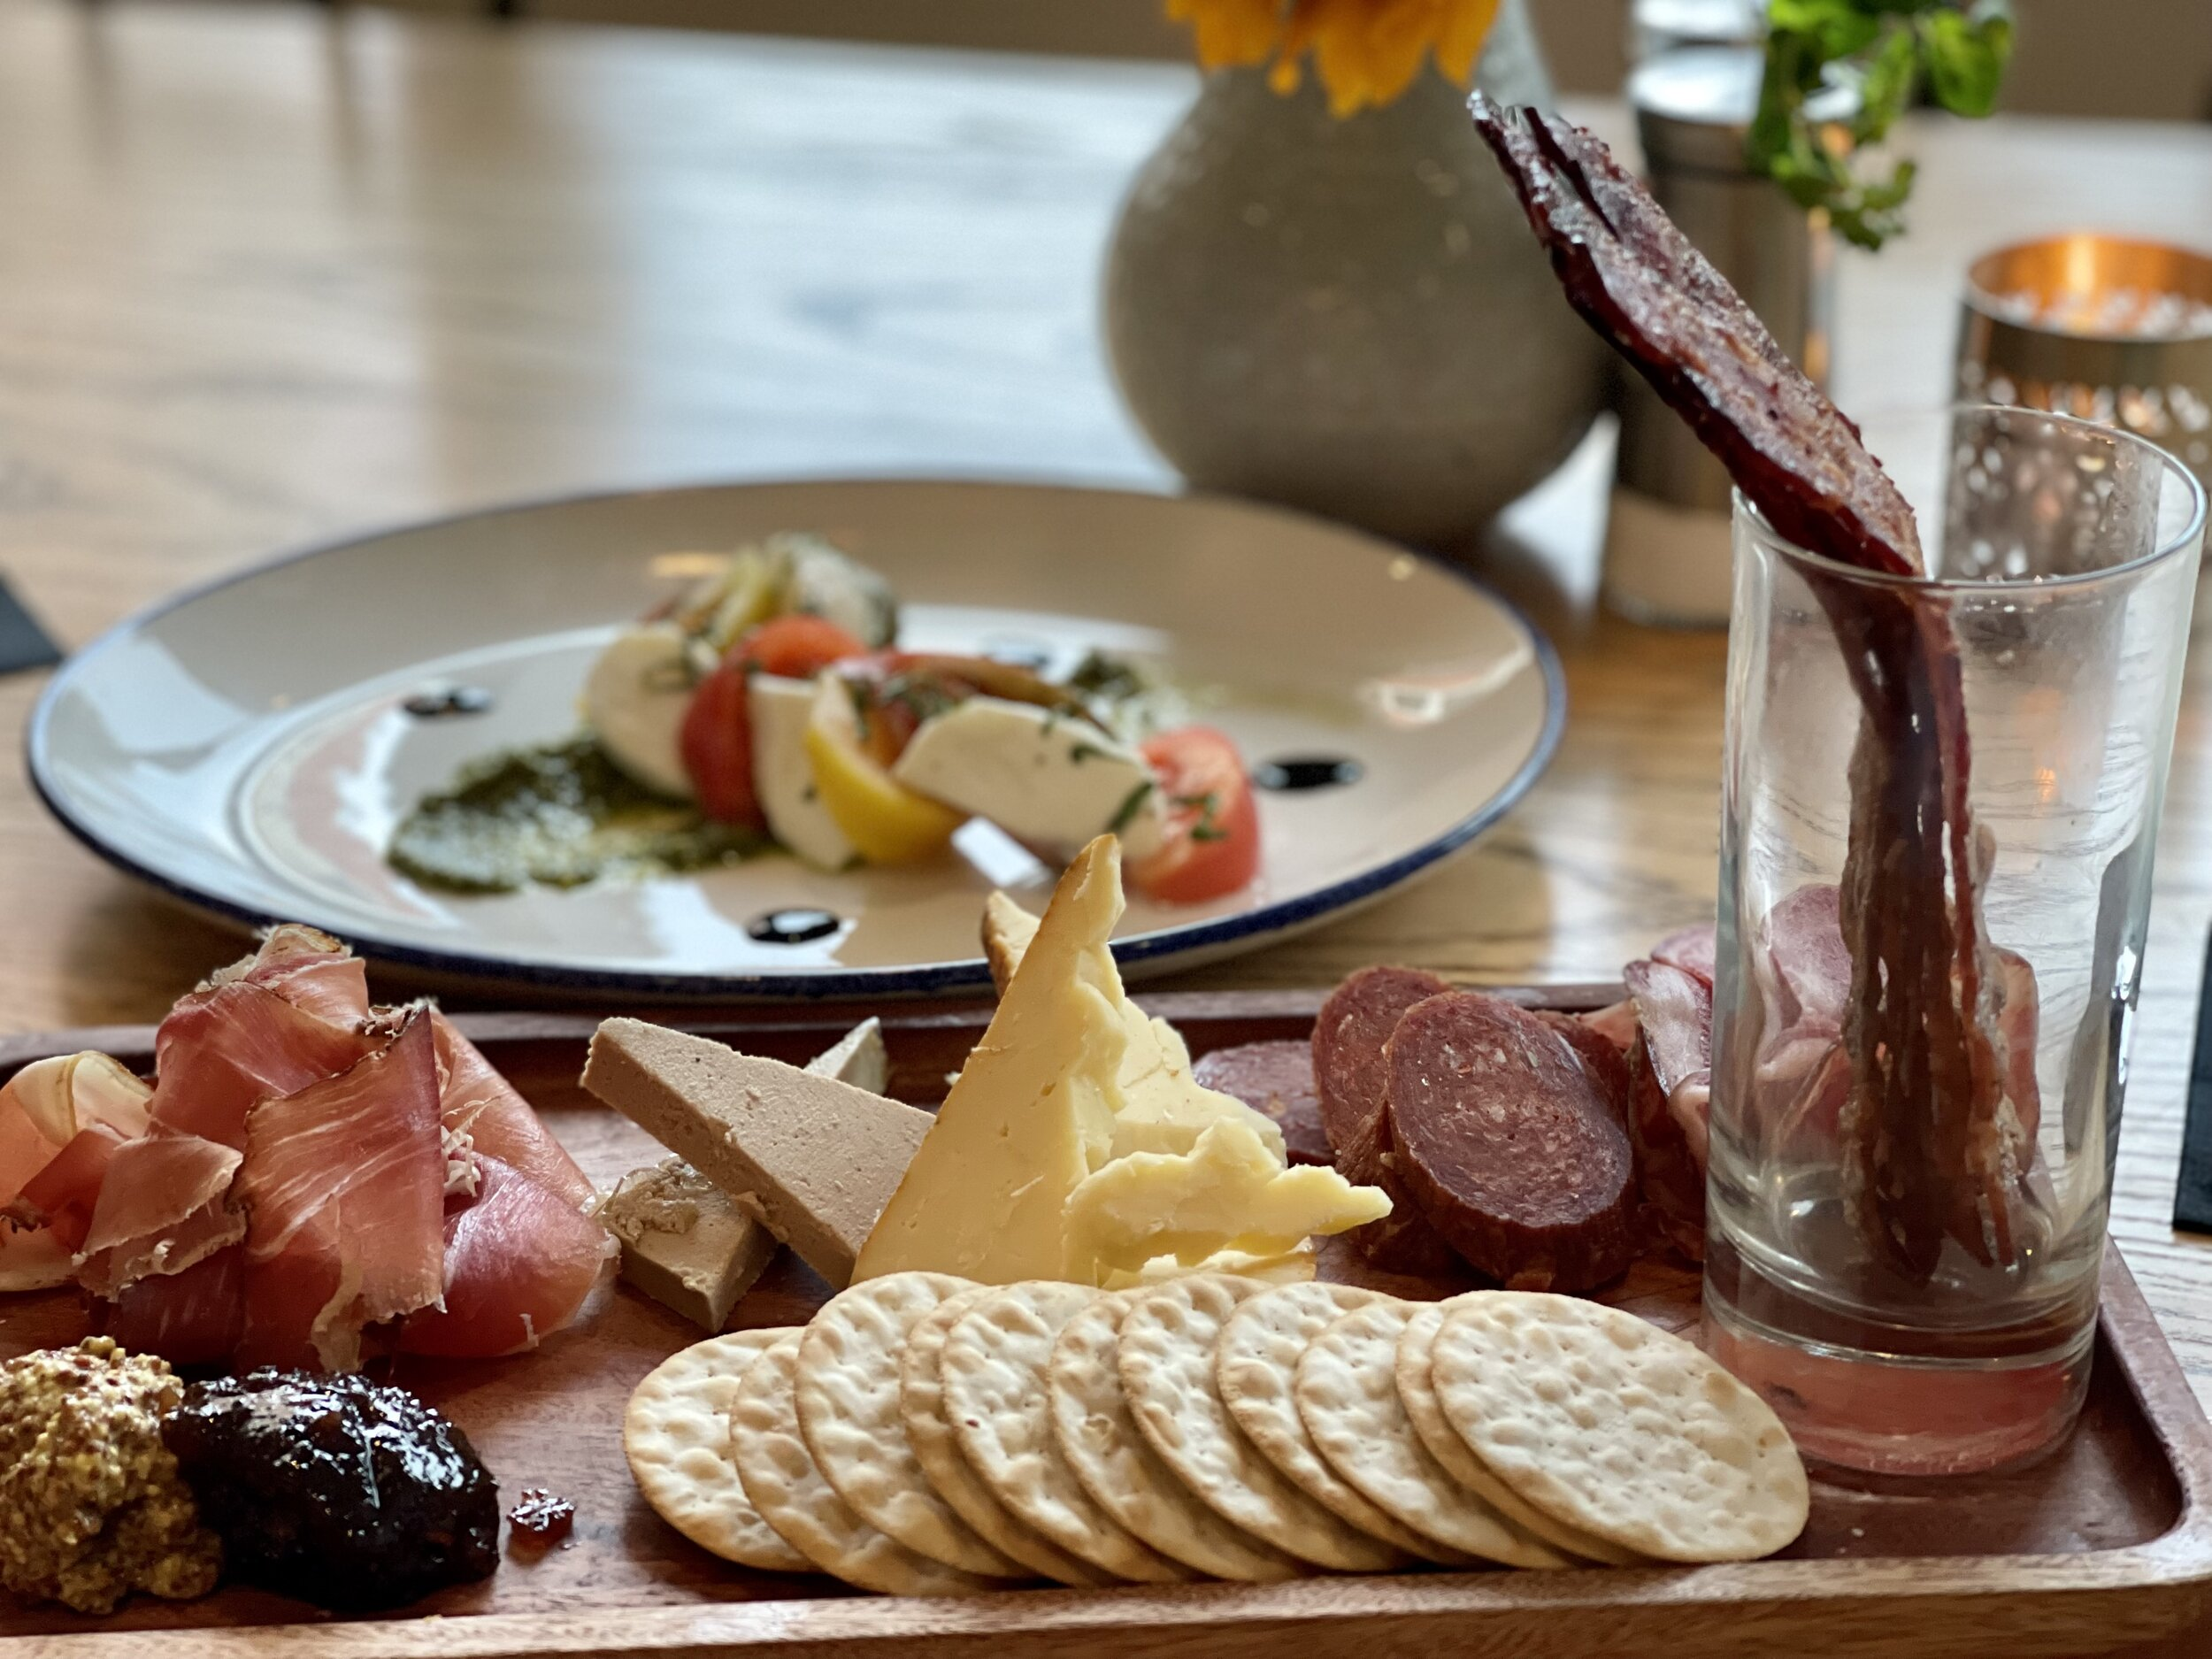 Caprese Salad and Charcuterie Board at 22 Square in the Adaz Savannah boutique hotel